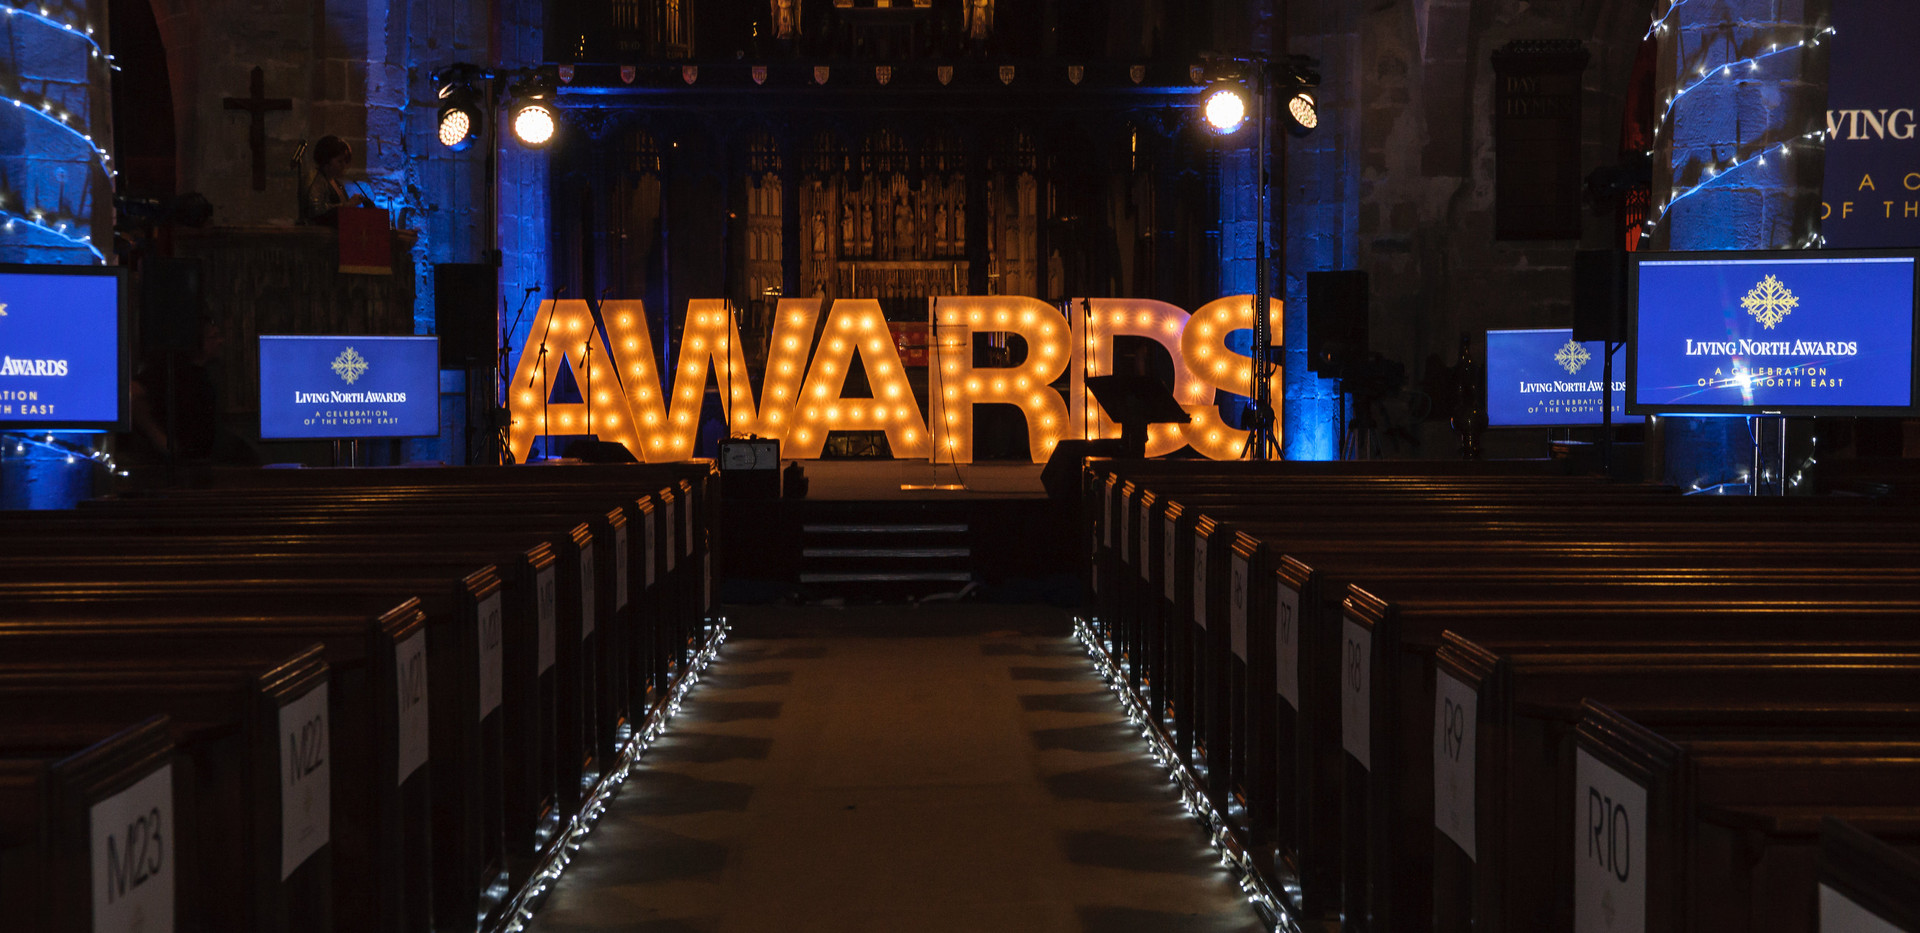 5ft Iluminated AWARDS letters at Living North Awards Evening.